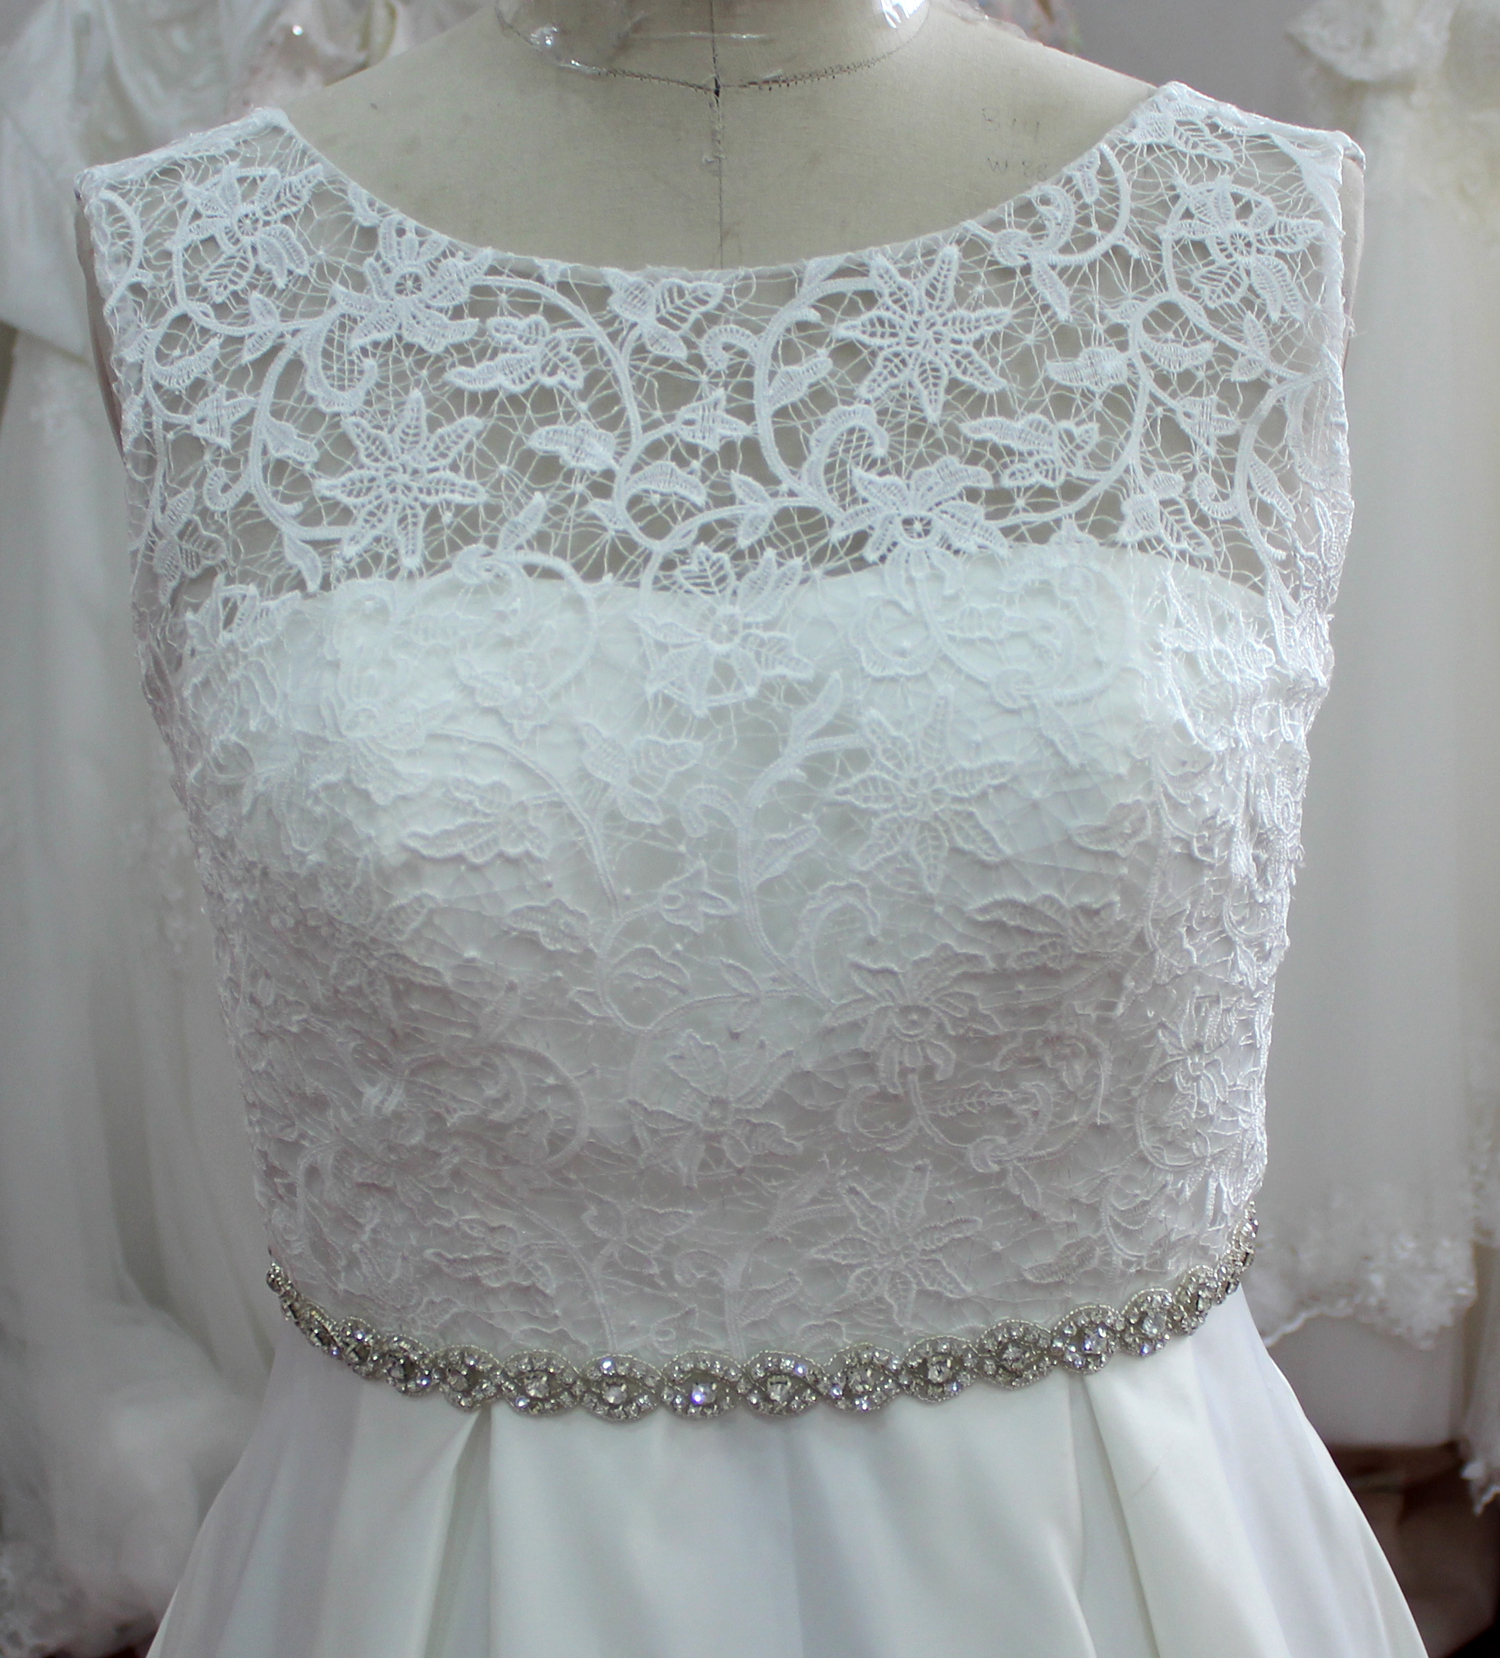 Aubree Beach Simple Lace Wedding Dress - WeddingOutlet.com.au